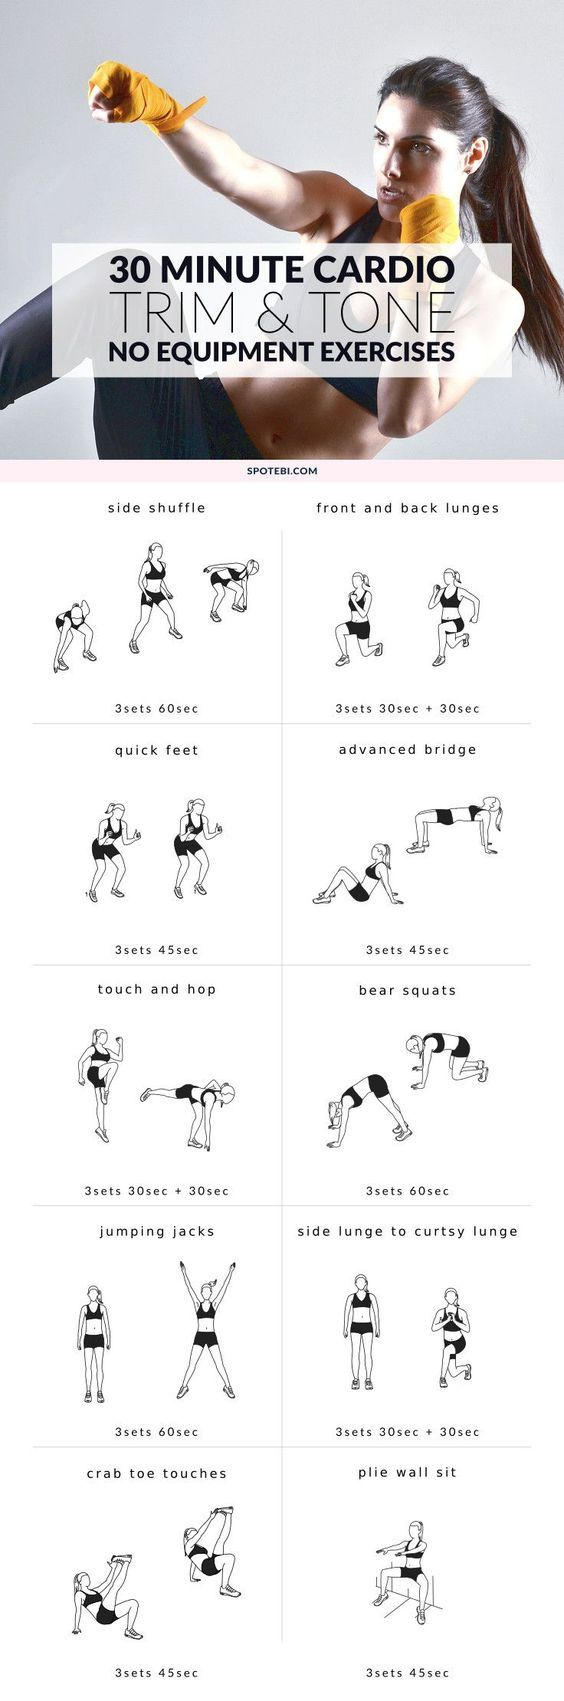 Workout Plans Work Your Legs Hips And Glutes With These Lower